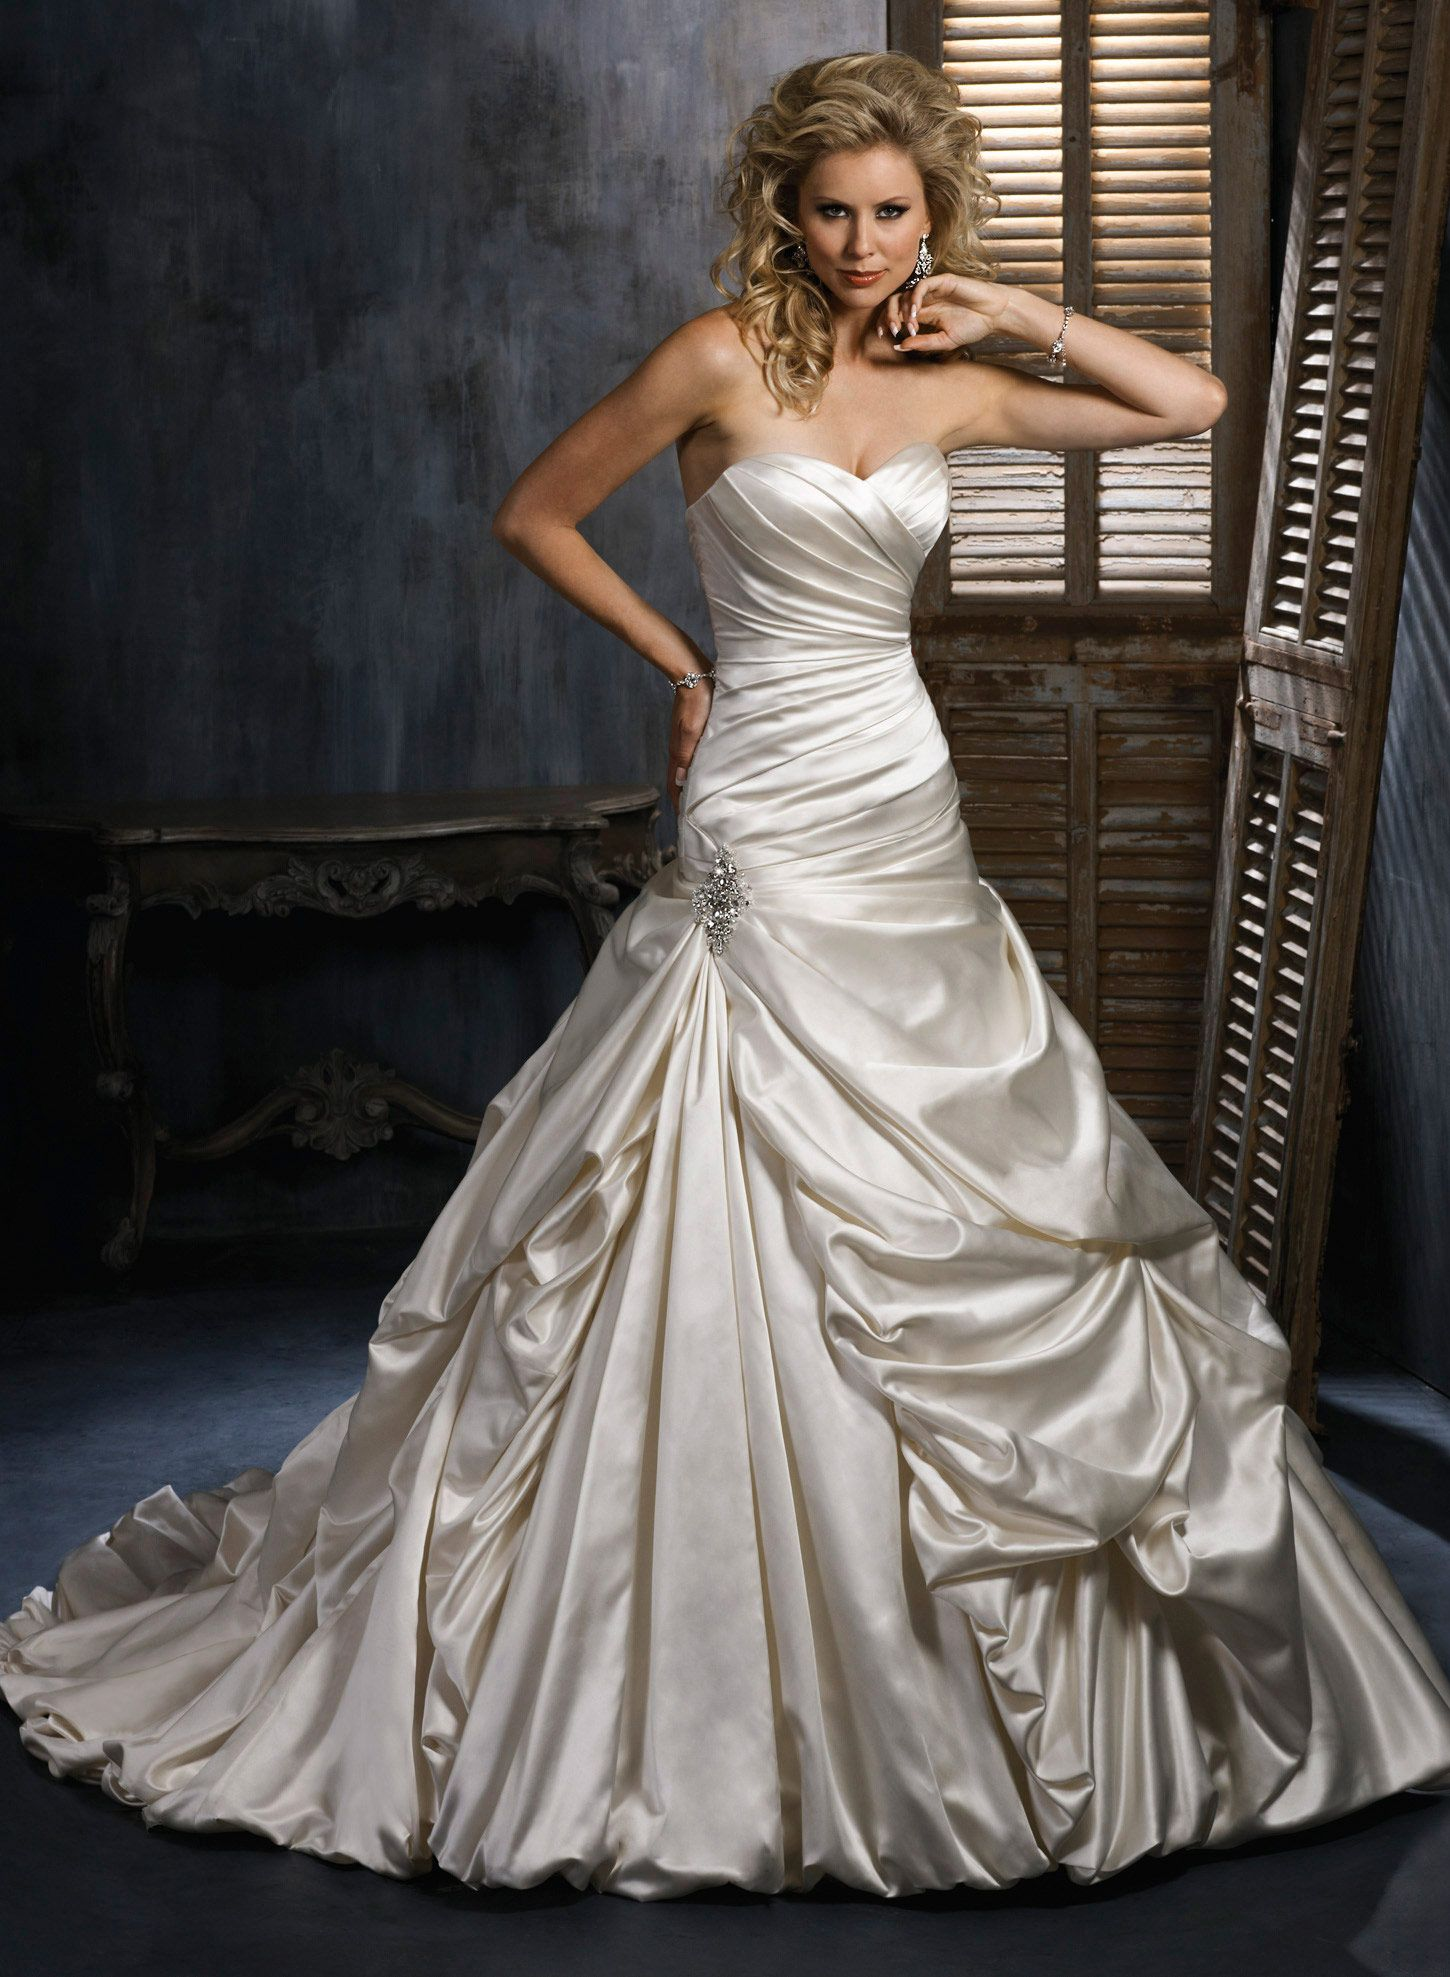 Satin Ball Gown With Asymmetrical Rouched Top Sweatheart Neckline And Sideswept Pickups